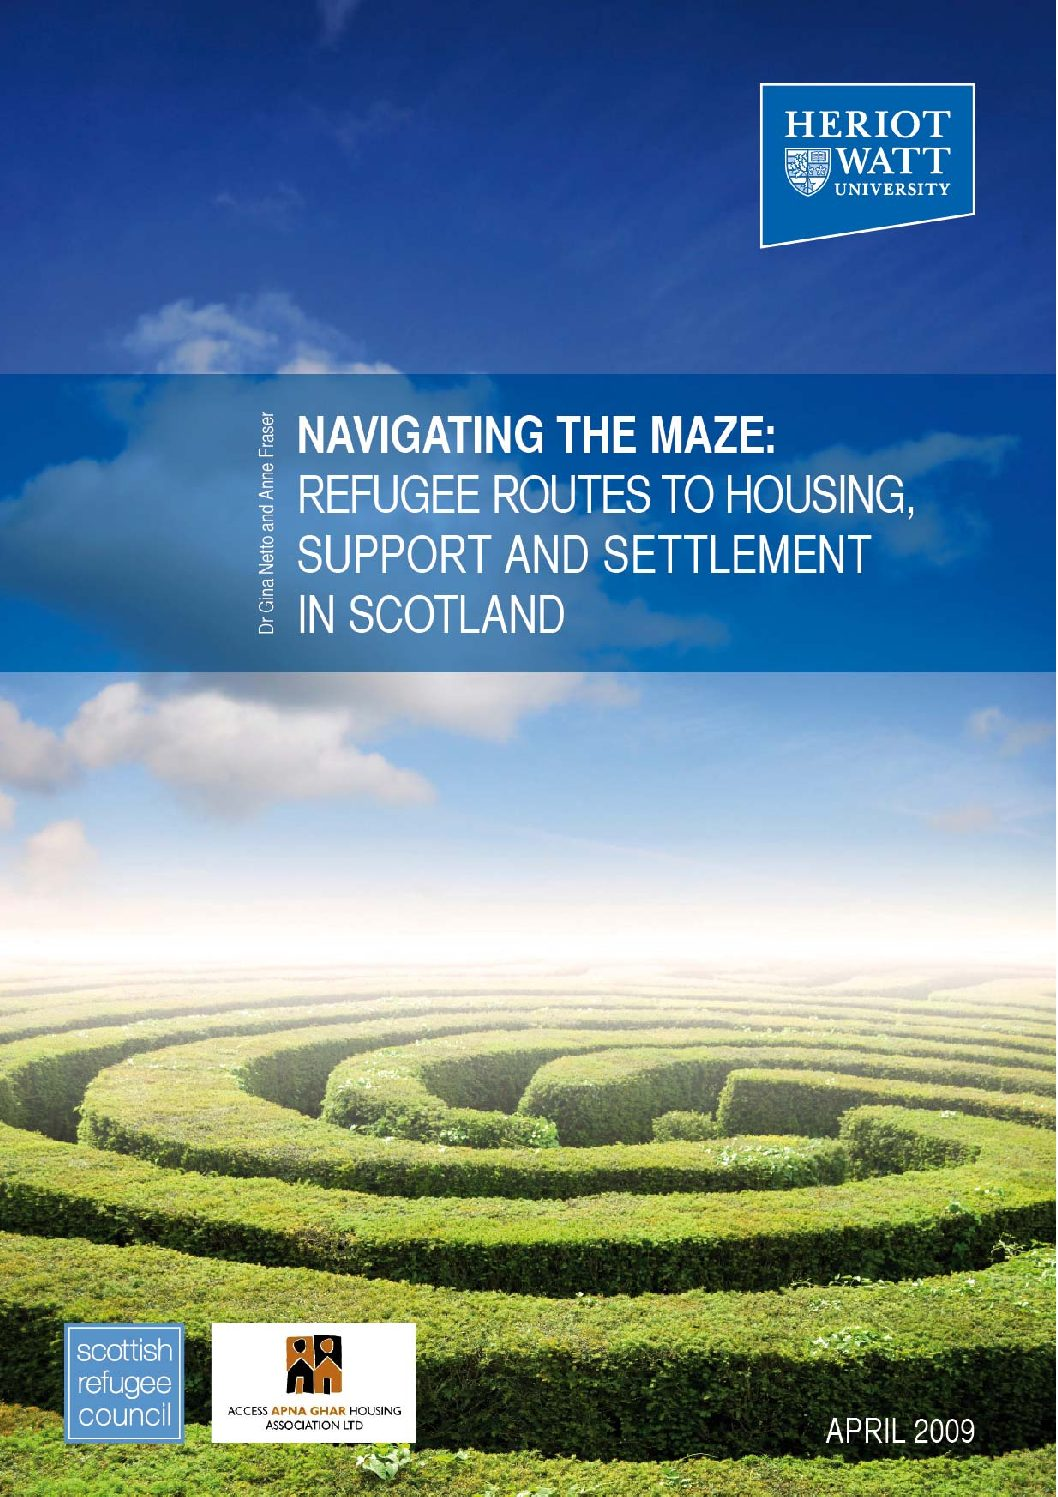 Navigating-the-maze-Refugee-routes-to-housing-support-and-settlement-in-Scotland-pdf